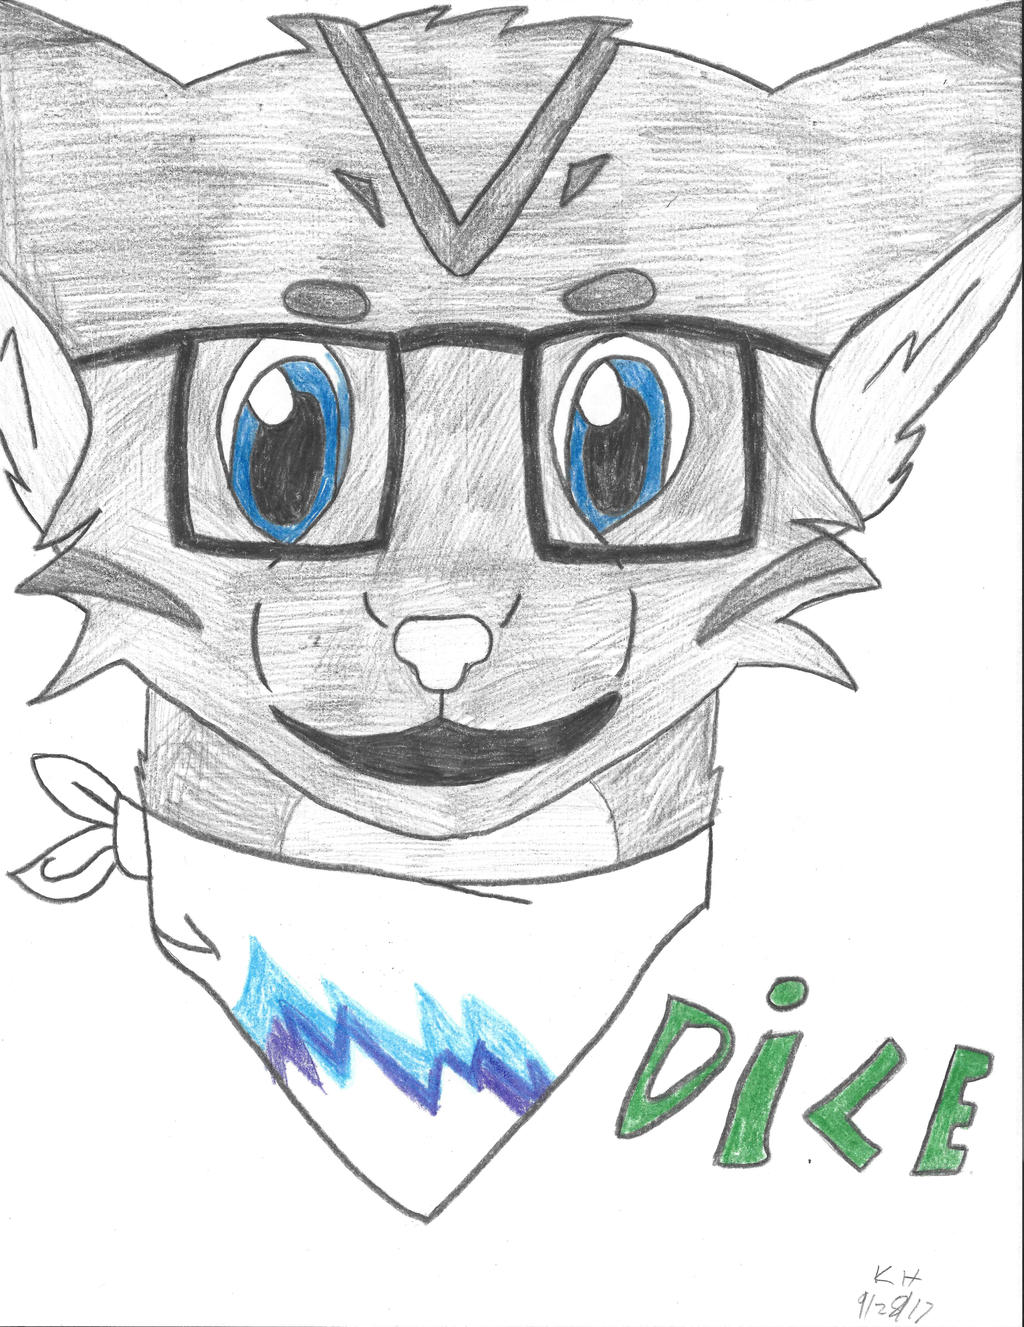 Dice - Free Practice Sketch by mythicalpizza